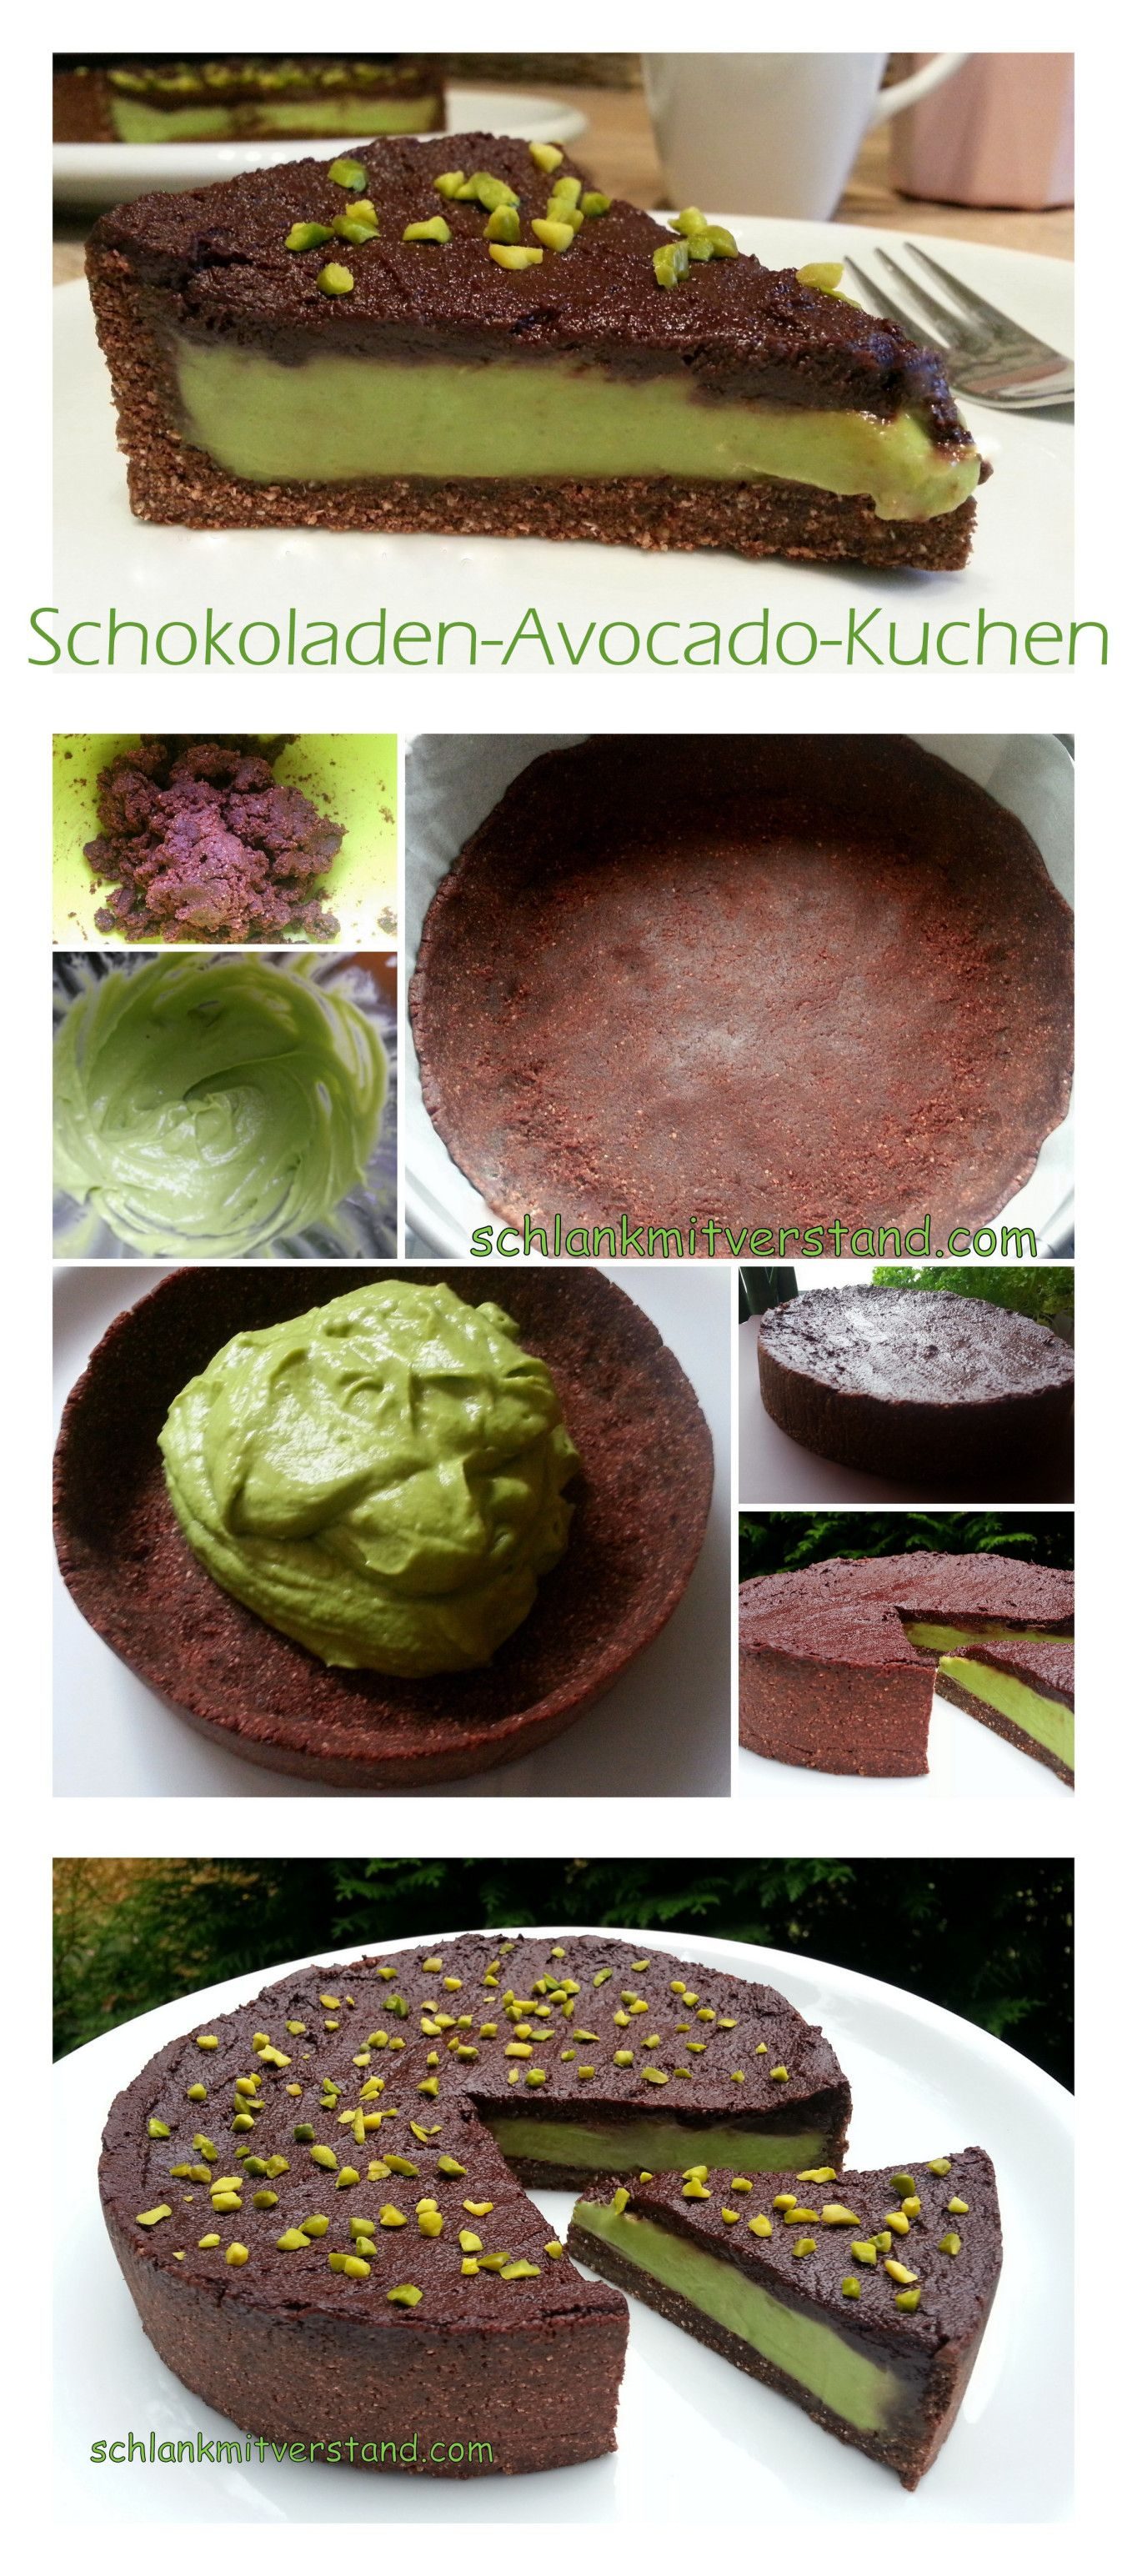 Avocado Kuchen Low Carb Schokoladen Avocado Kuchen Low Carb Avocados